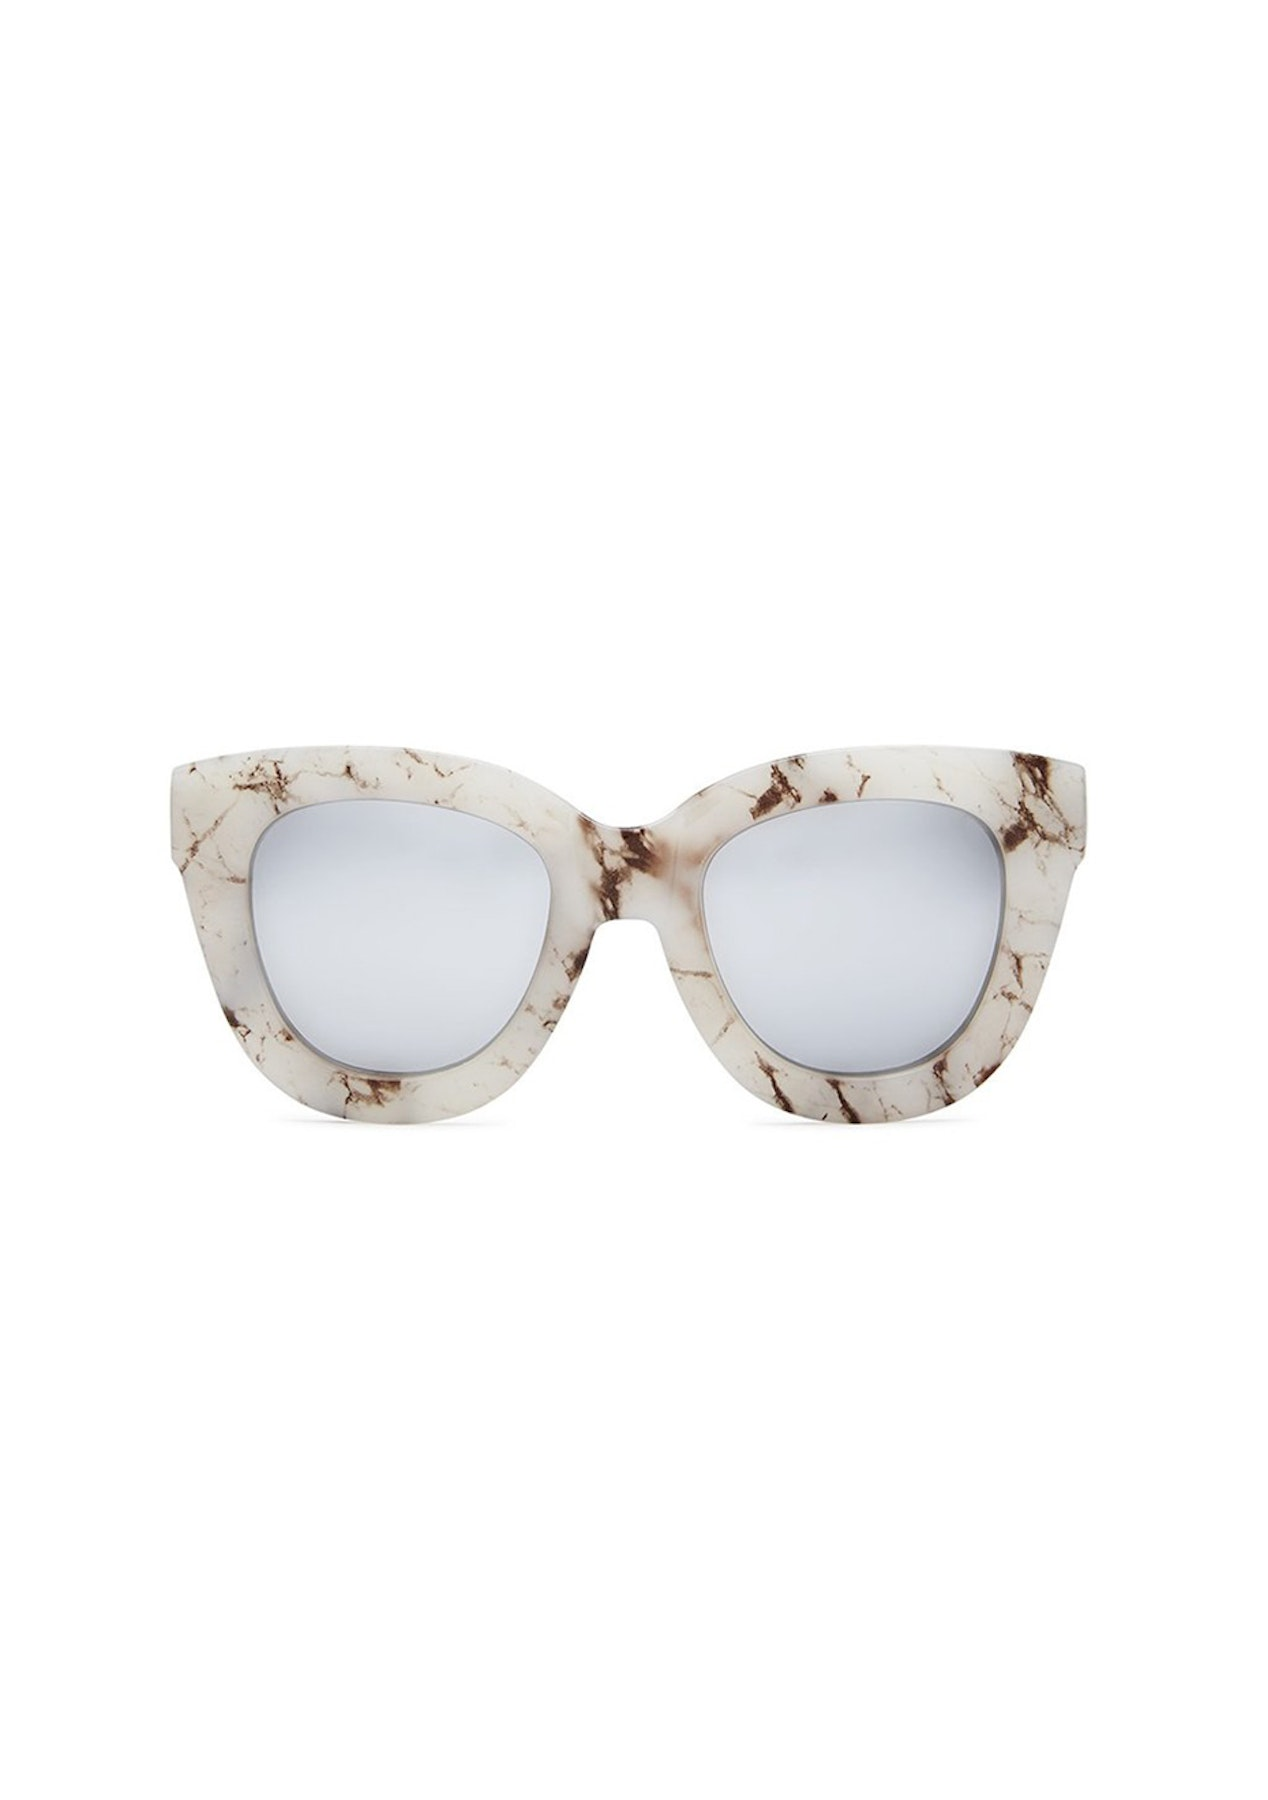 3f9fa18c6151e Quay - Sugar And Spice - White Marble   Silver Mirror - Eyewear   Accessory  Reductions - Onceit